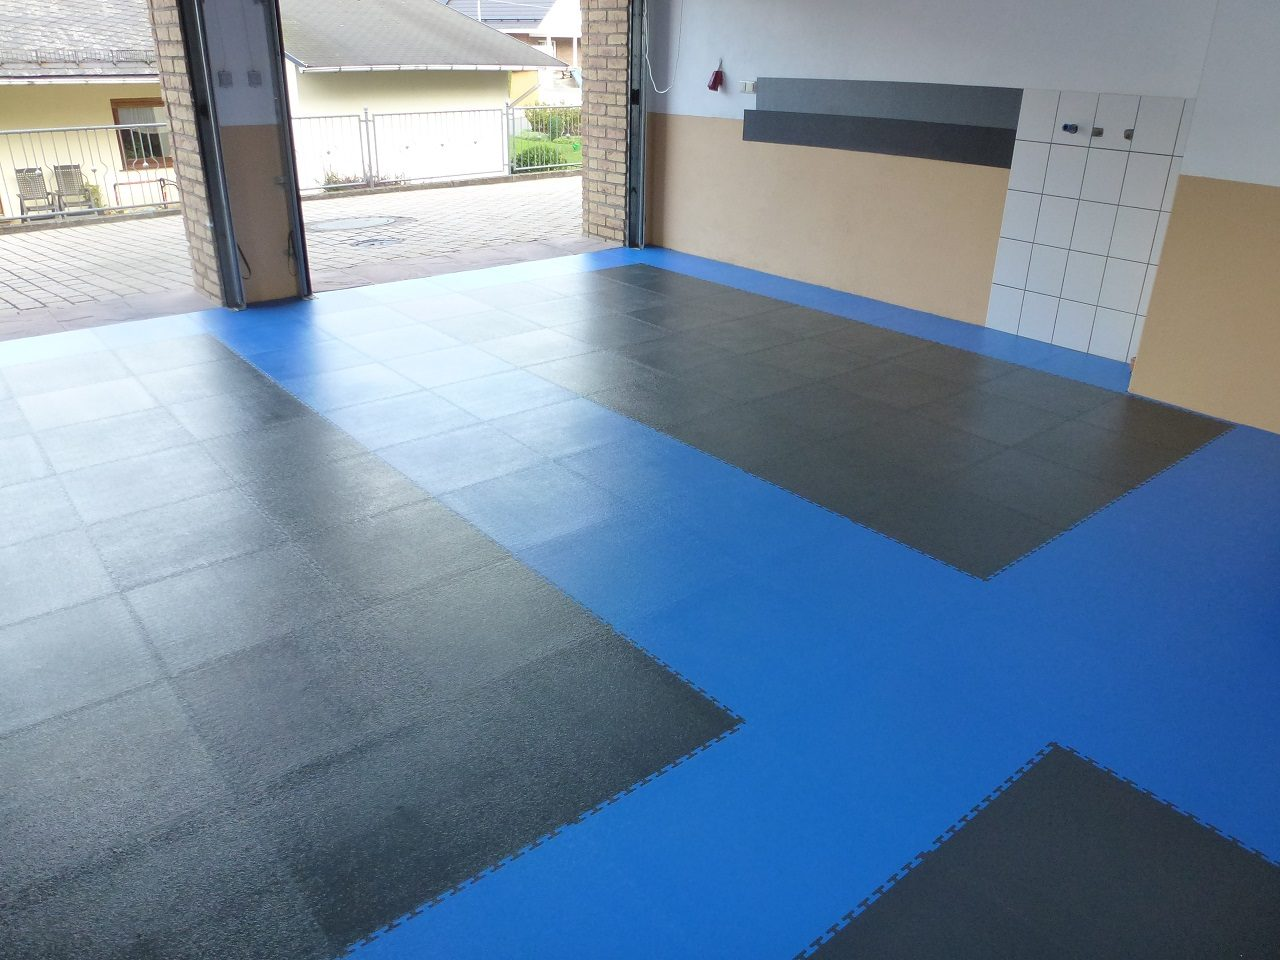 Pvc Boden Werkstatt Pvc Garage Floor With Click System Of Tiles Pvc Flooring